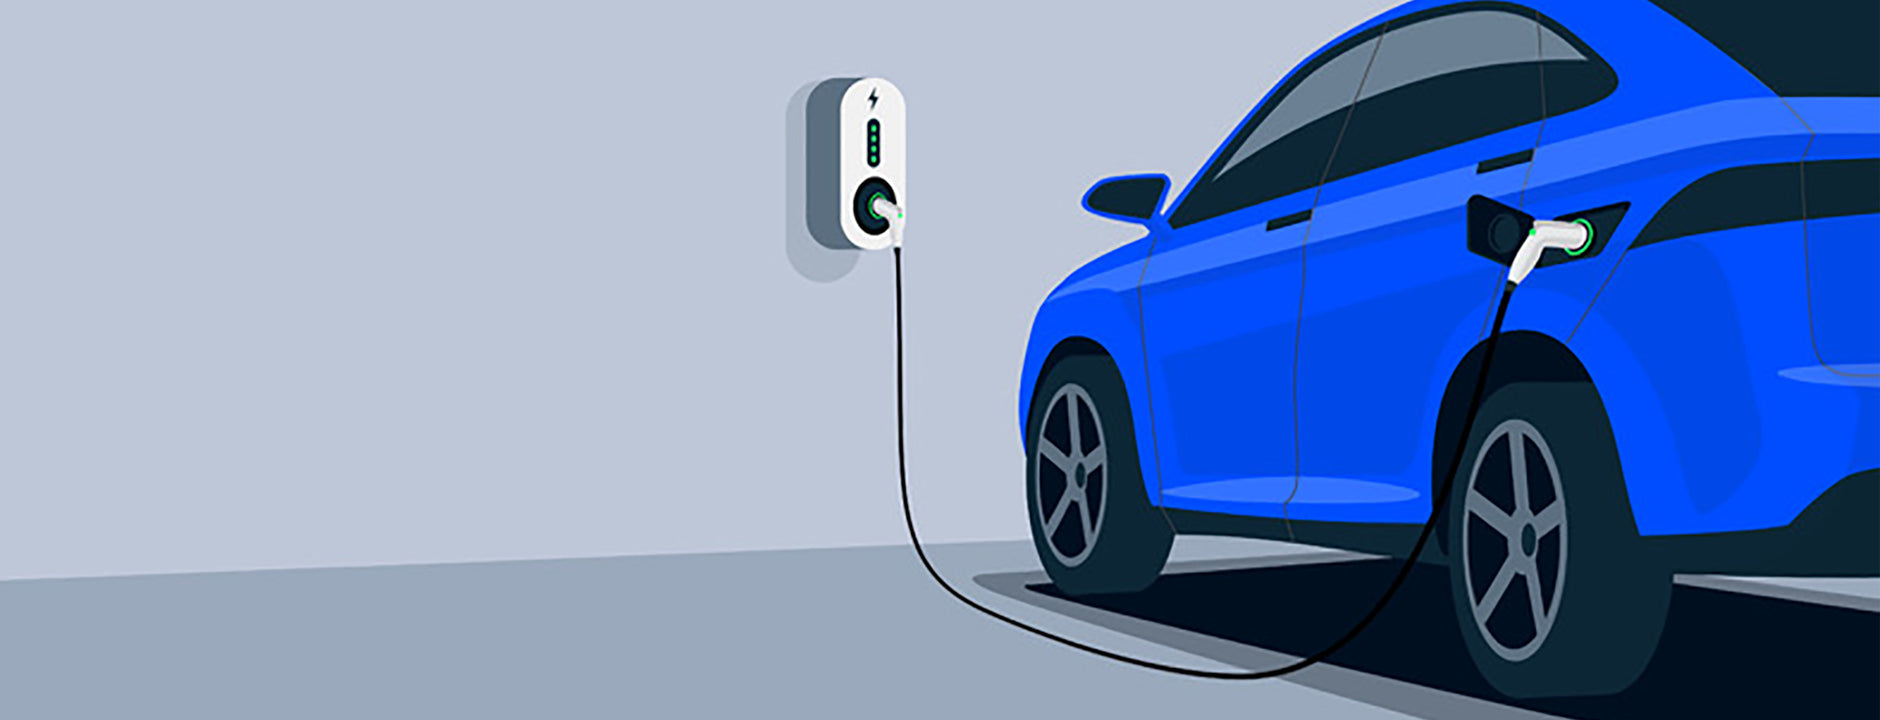 electric vehicle charging cord